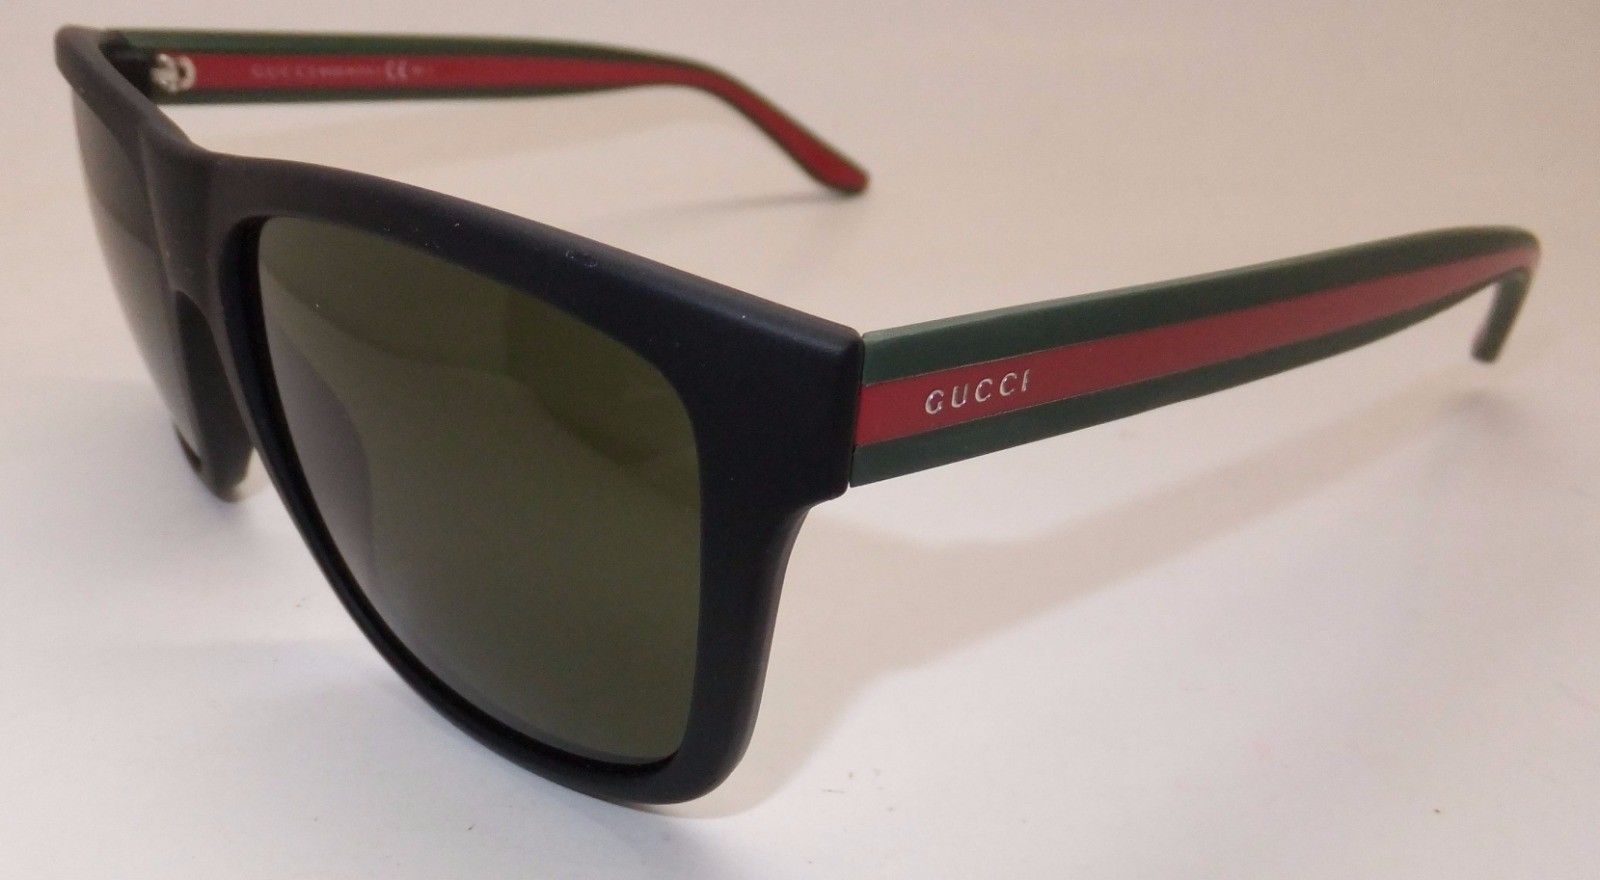 10ad8617ff4 Gucci GG 1118 S M1A1E Men Sunglasses Matte Black Green Red Italy ...